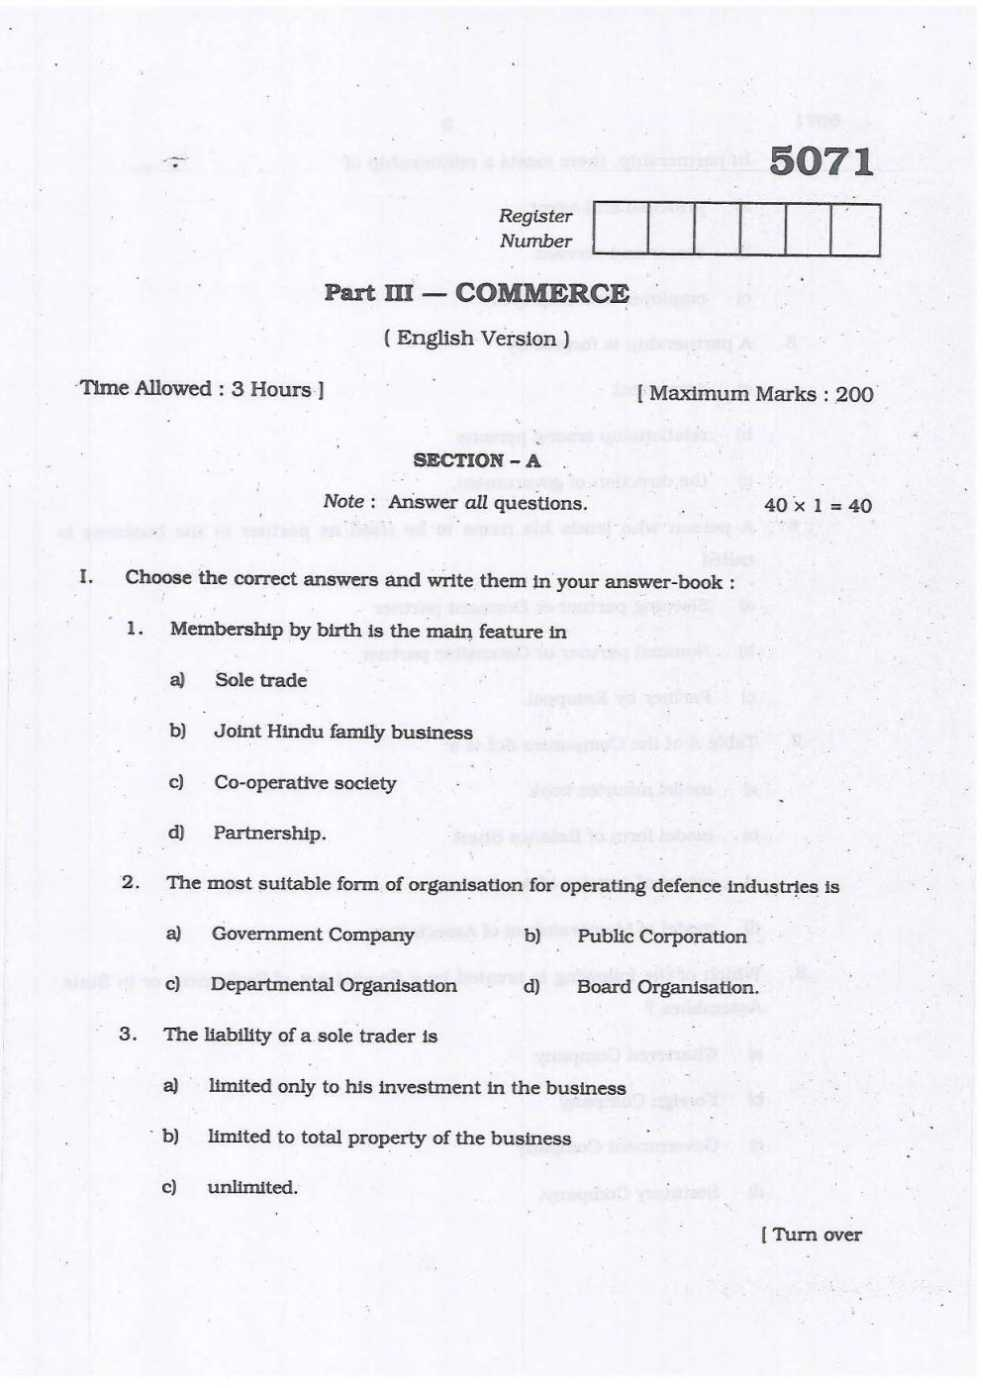 Model Question Papers in Changed pattern